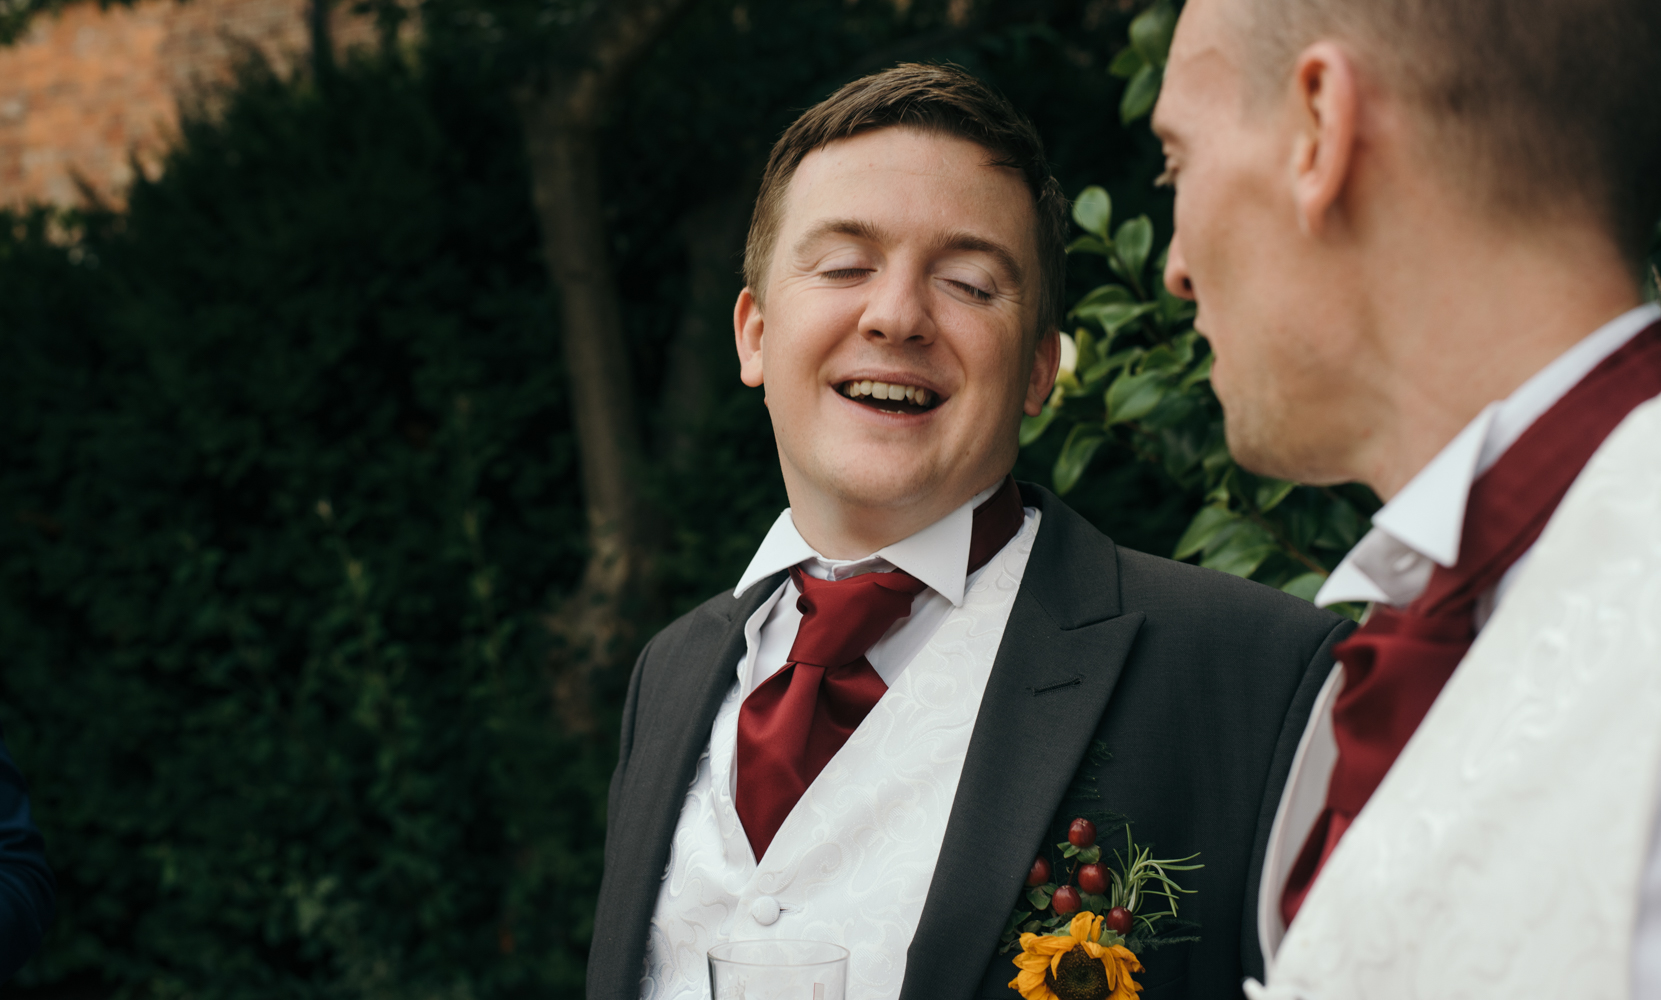 The best man chatting to guests